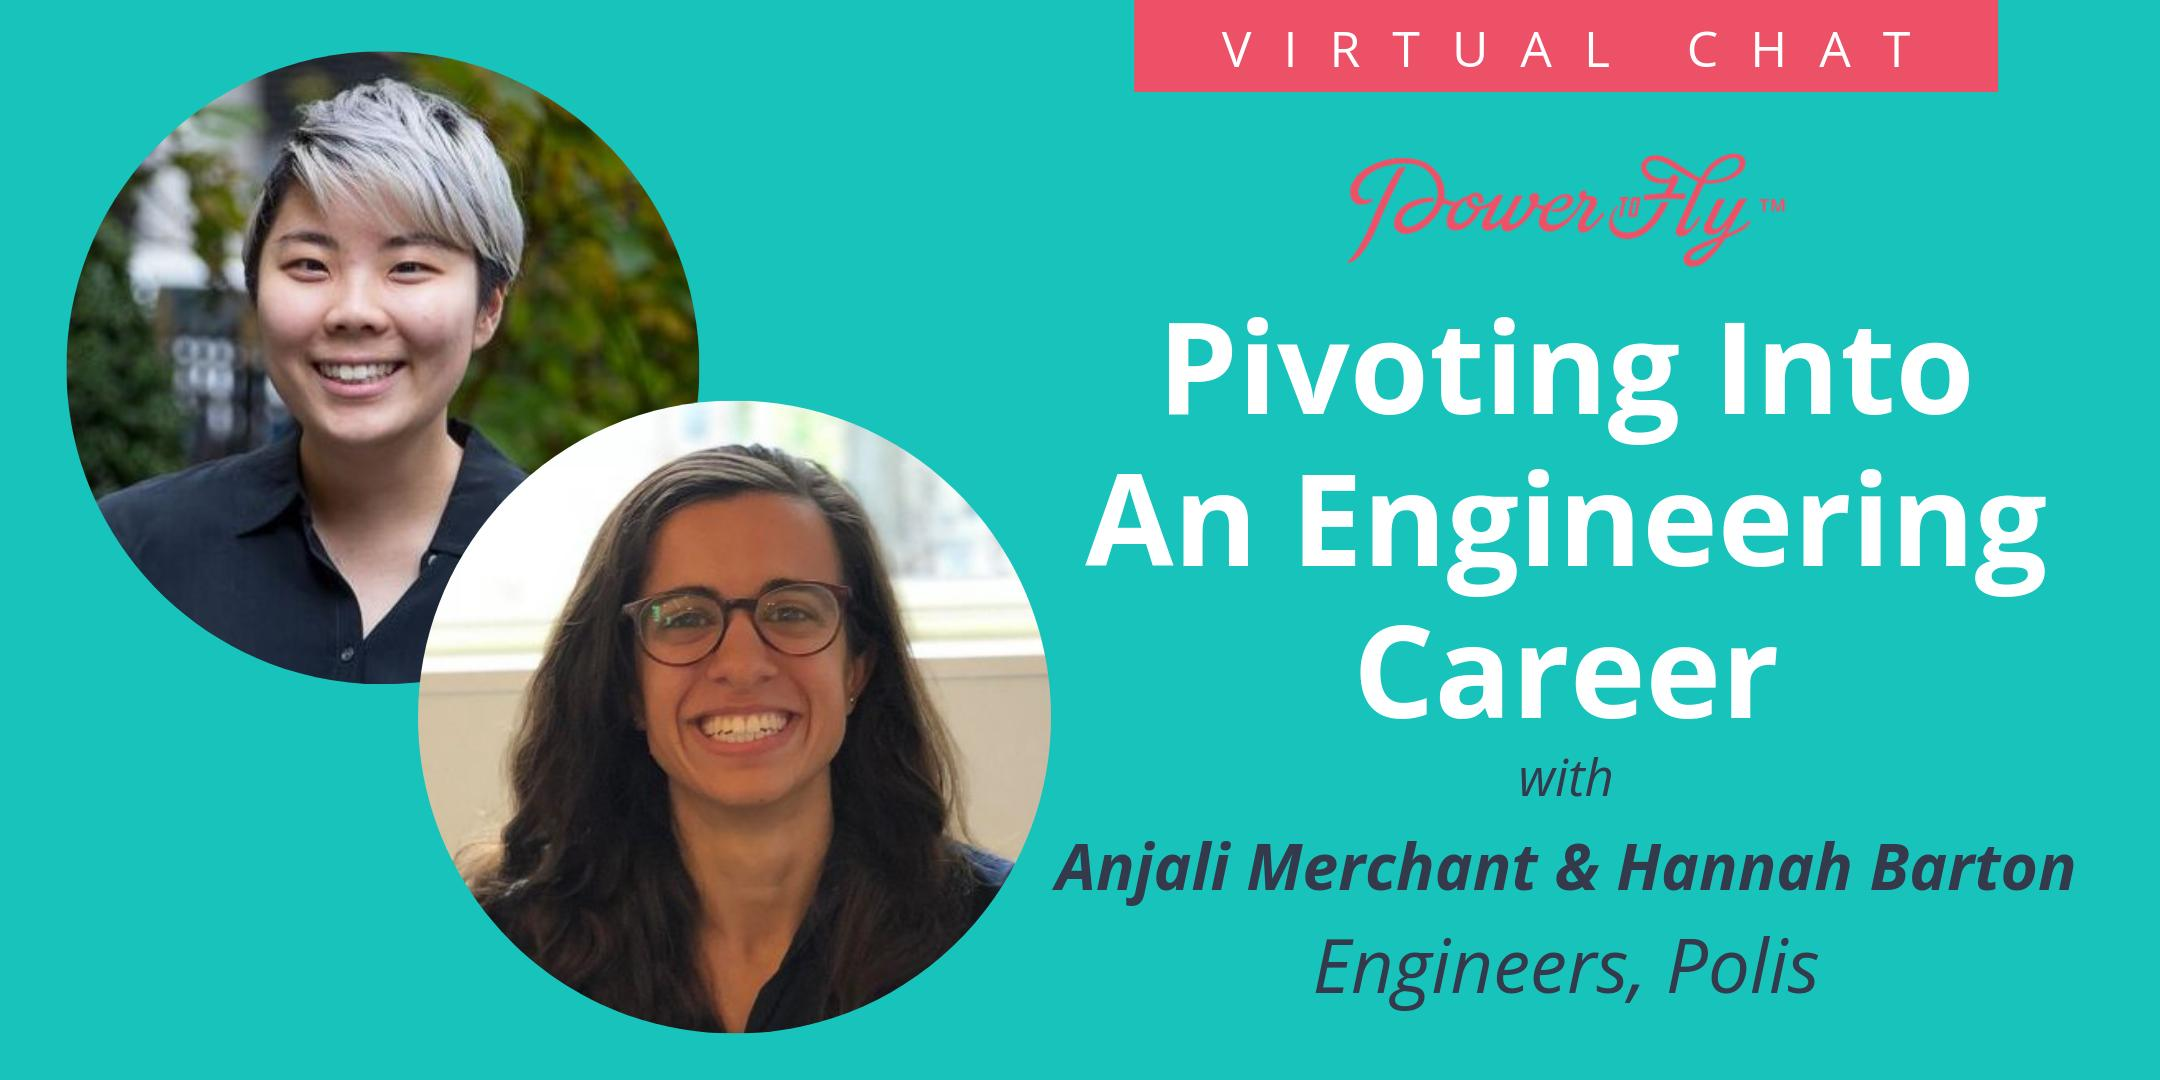 Pivoting Into An Engineering Career